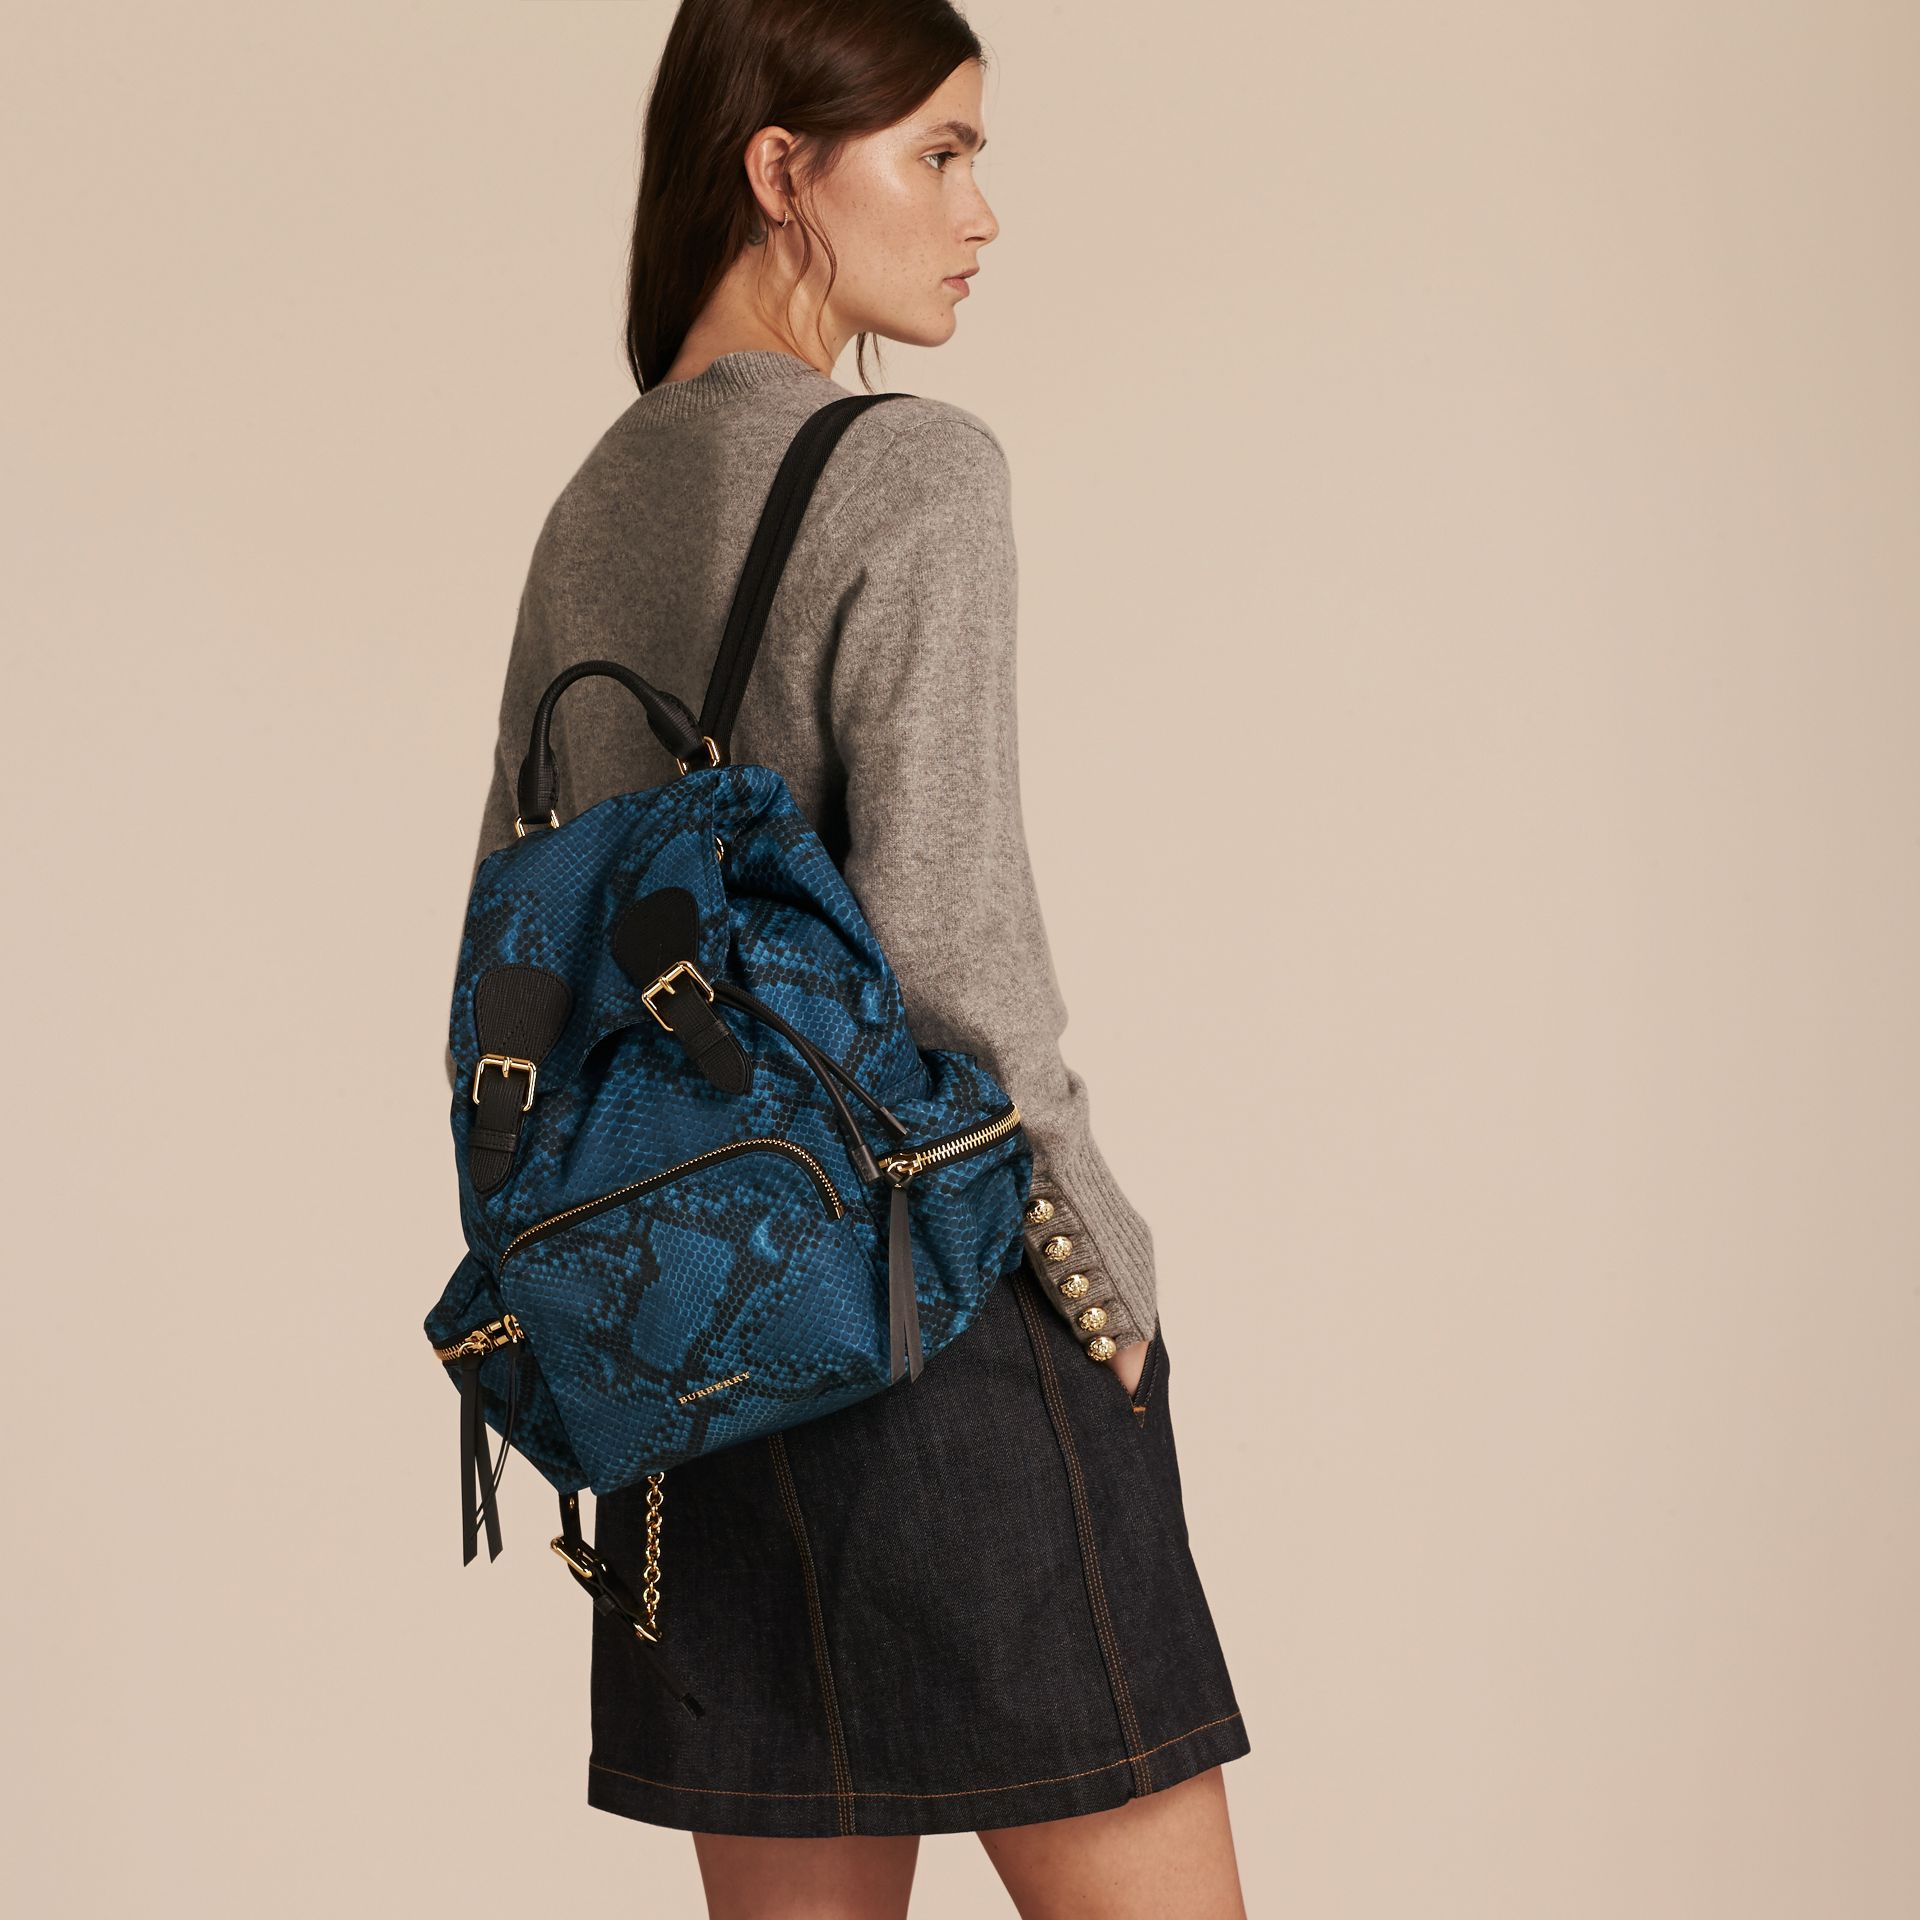 Sac The Rucksack medium en nylon à imprimé python et cuir Bleu - photo de la galerie 3